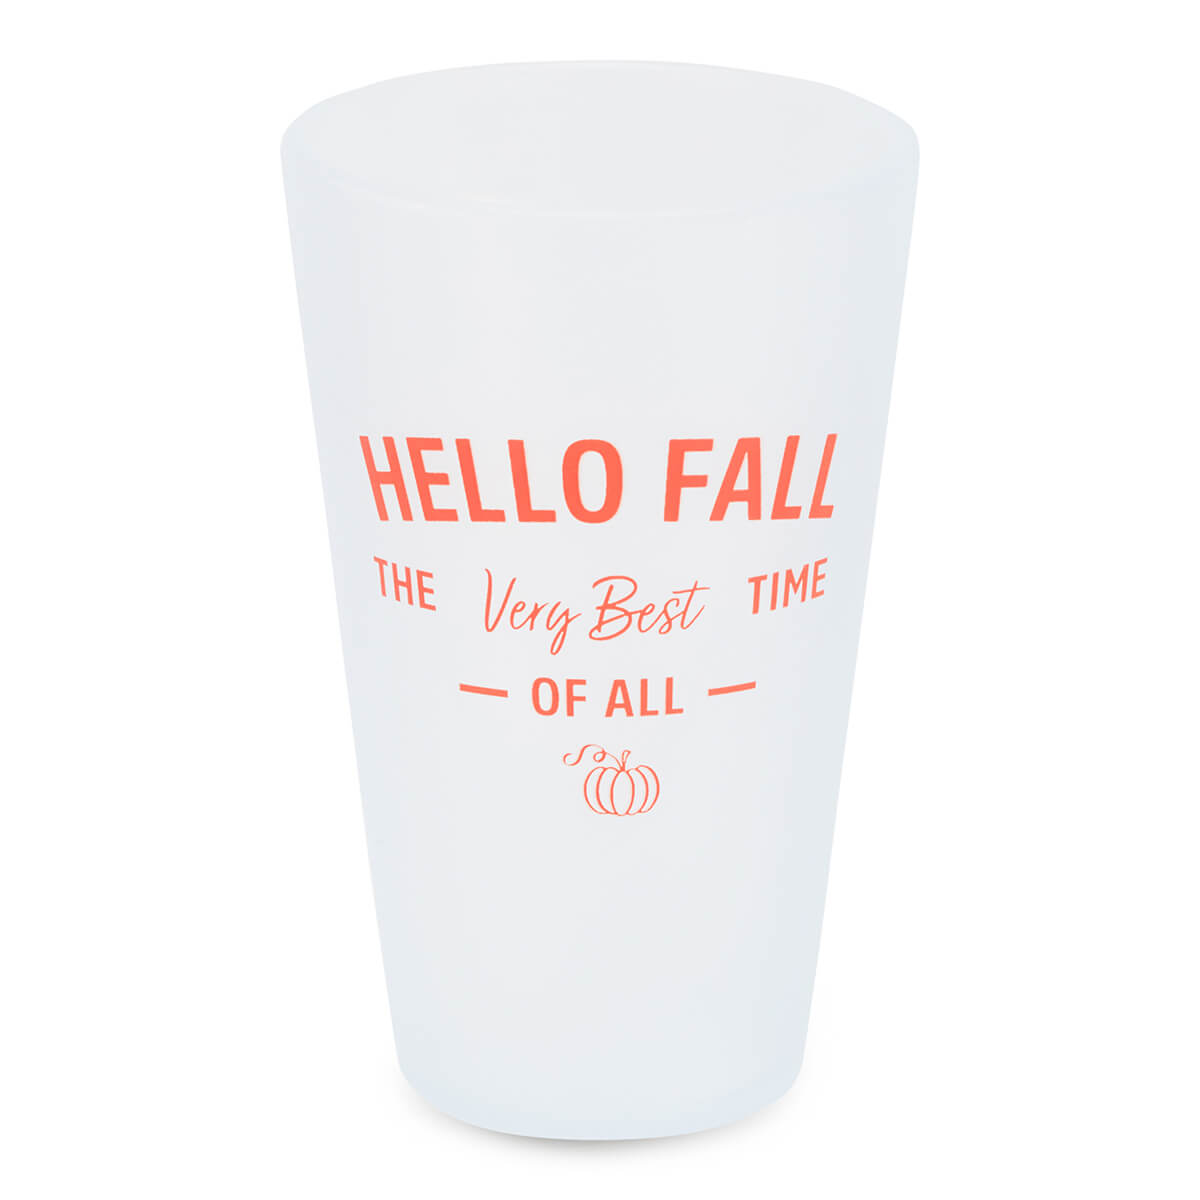 16oz Custom Fall Pint Glass - Frosted White